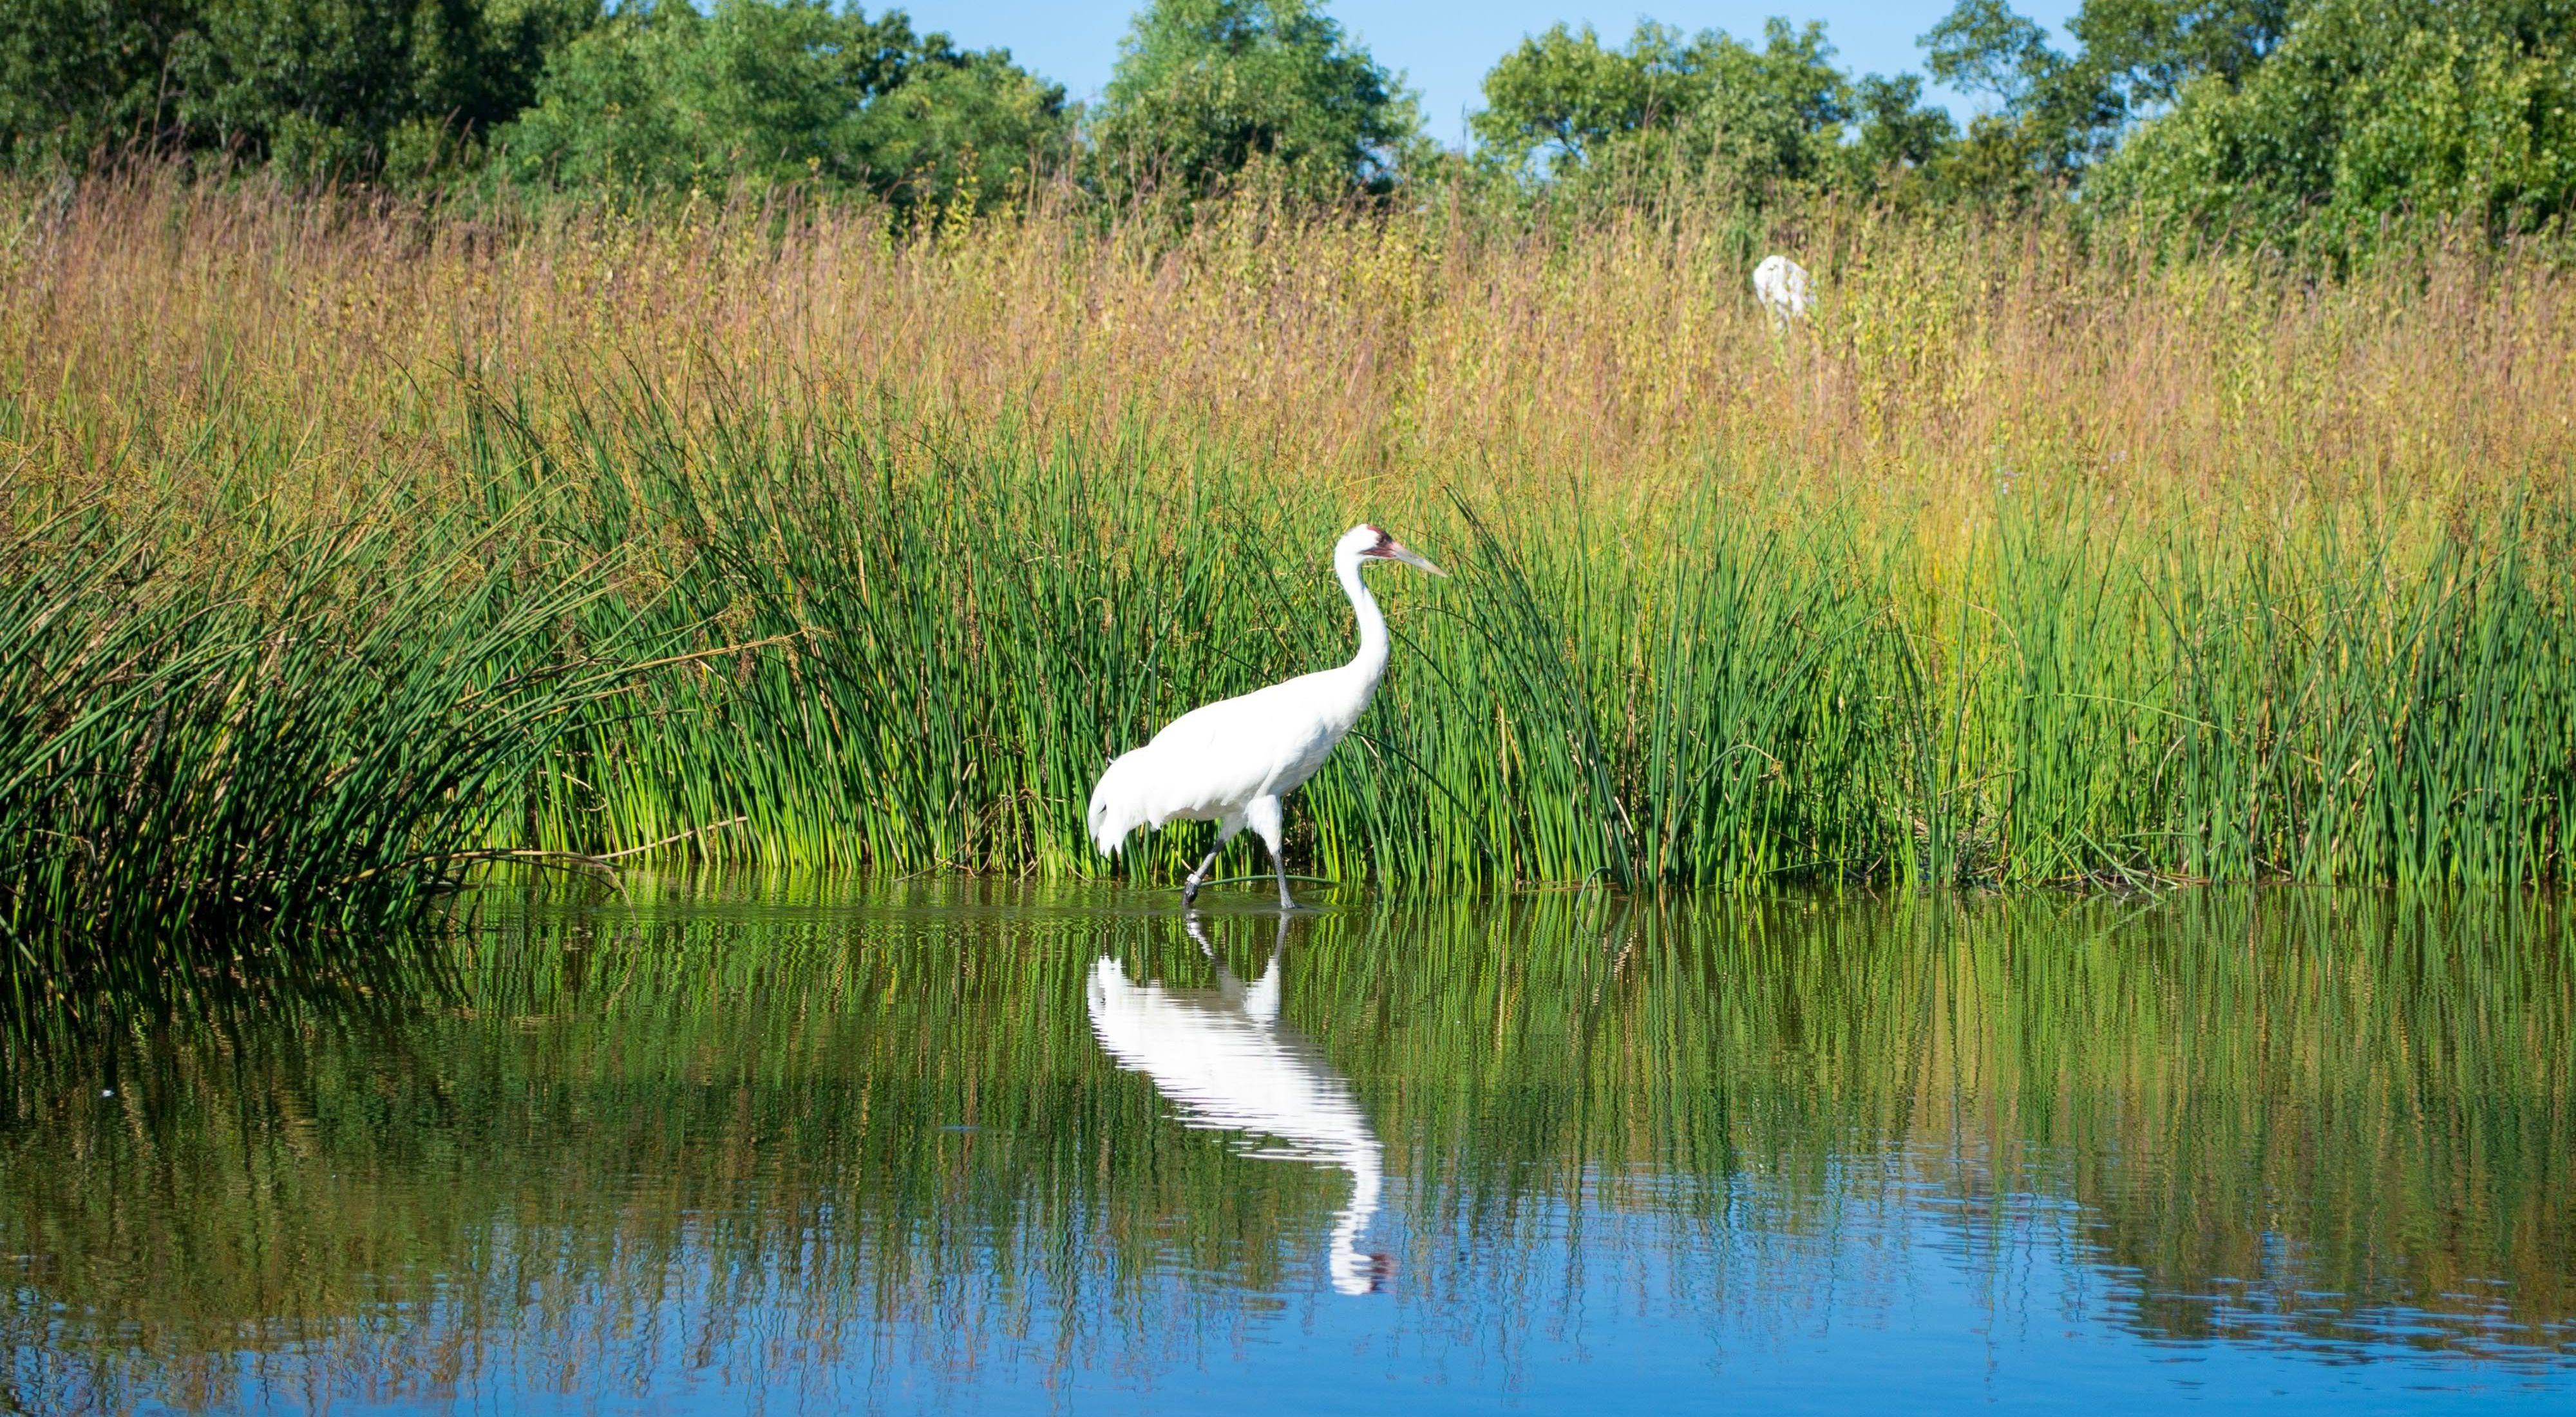 A whooping crane in the wetlands of Iowa.